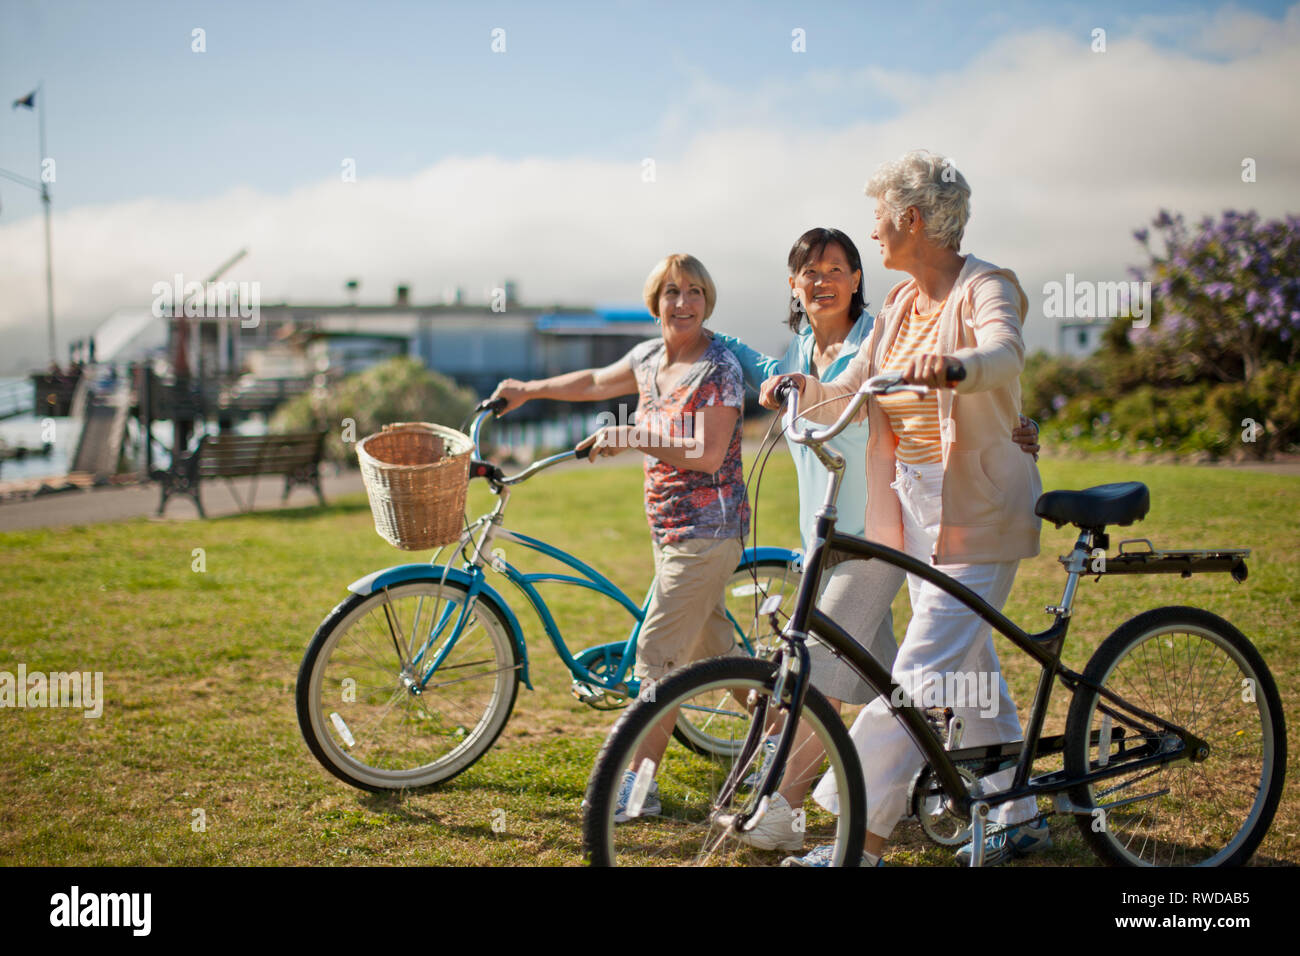 Three mature female friends have fun chatting together as they walk their bicycles through a grassy park. - Stock Image